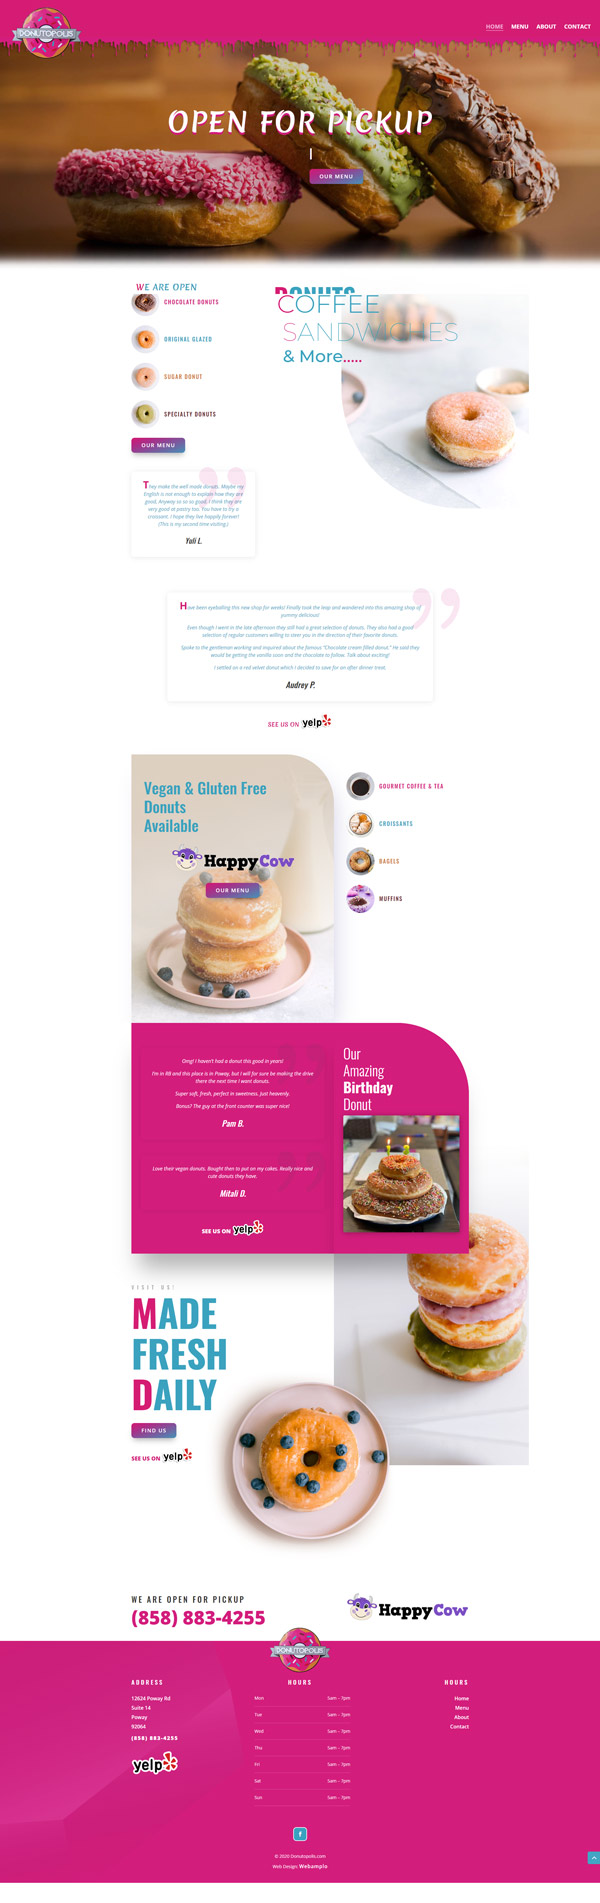 Donutopolis Web Design Project by Webamplo